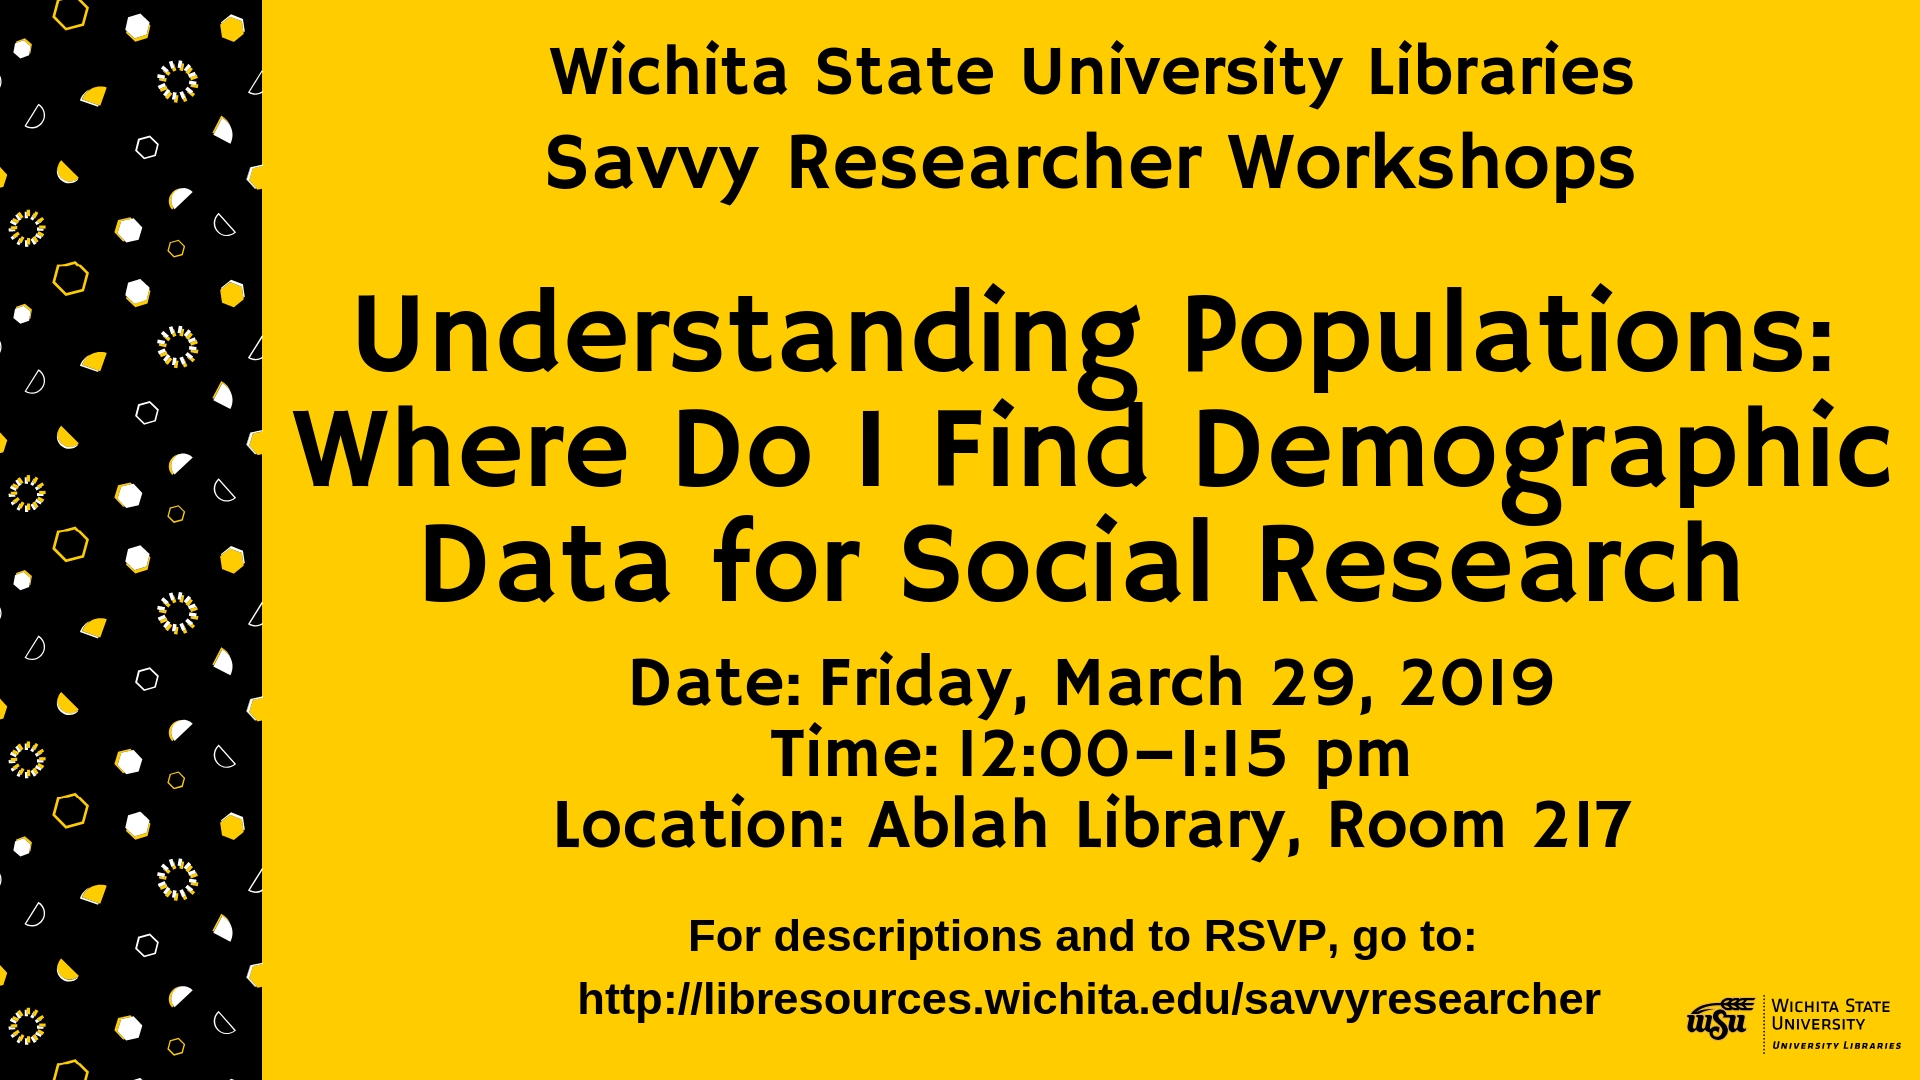 Understanding Populations: Where Do I Find Demographic Data for Social Research